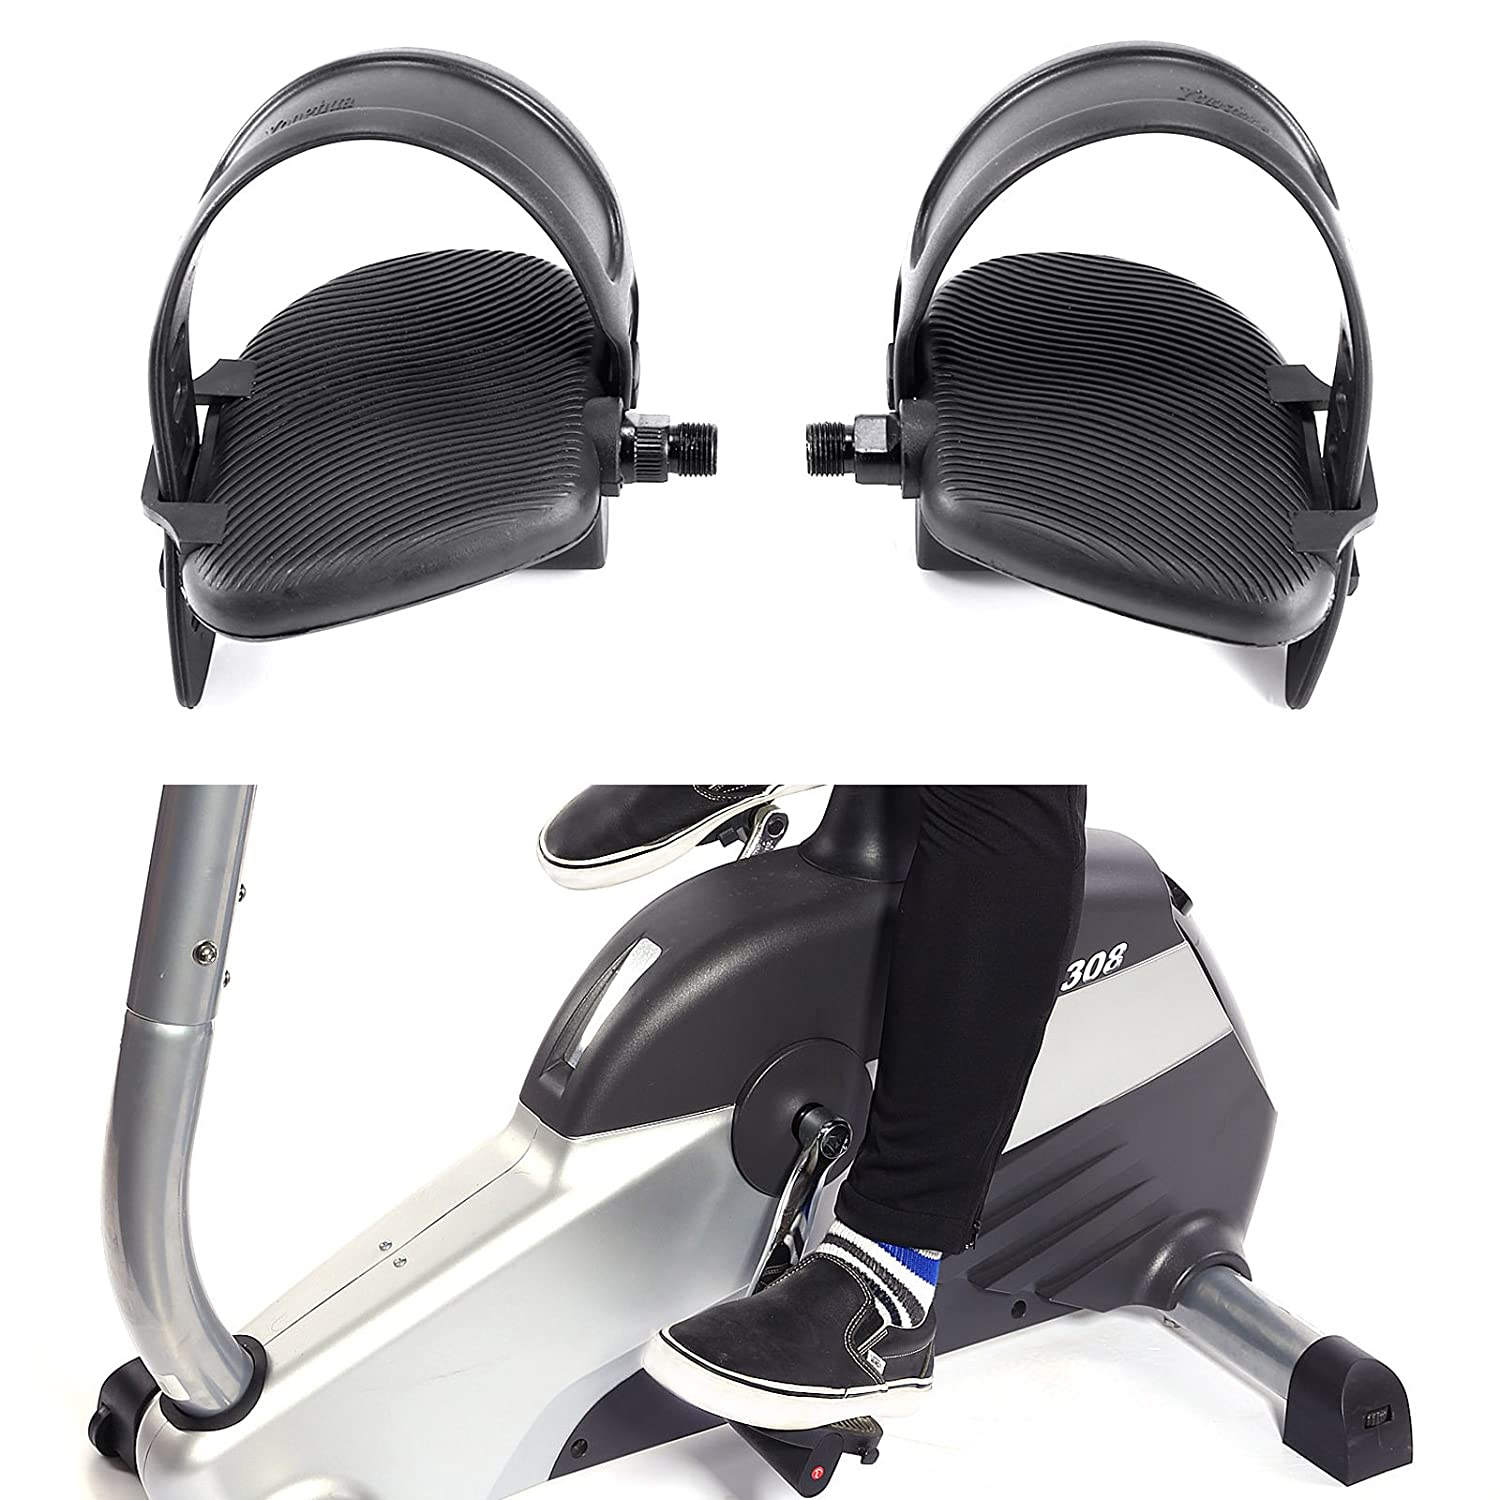 Hamimelon Pair Thread Generic Extra Large Exercise Bike Pedals and Pedal Strap Set Cycles Home Gym Bicycle